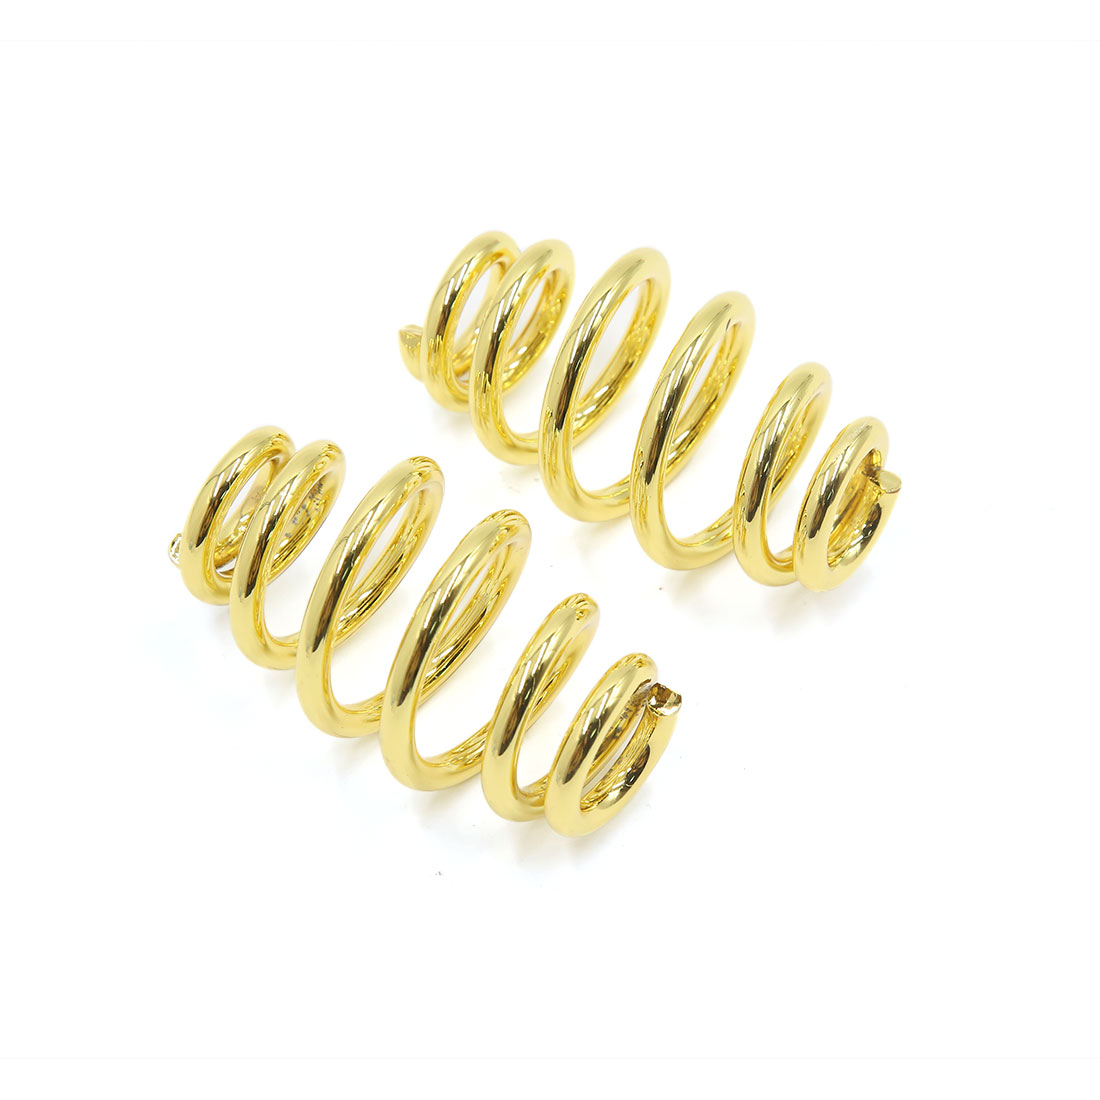 2Pcs Gold Tone Barrel Type Motorcycle Chopper Solo Seat Springs for Harley Davidson